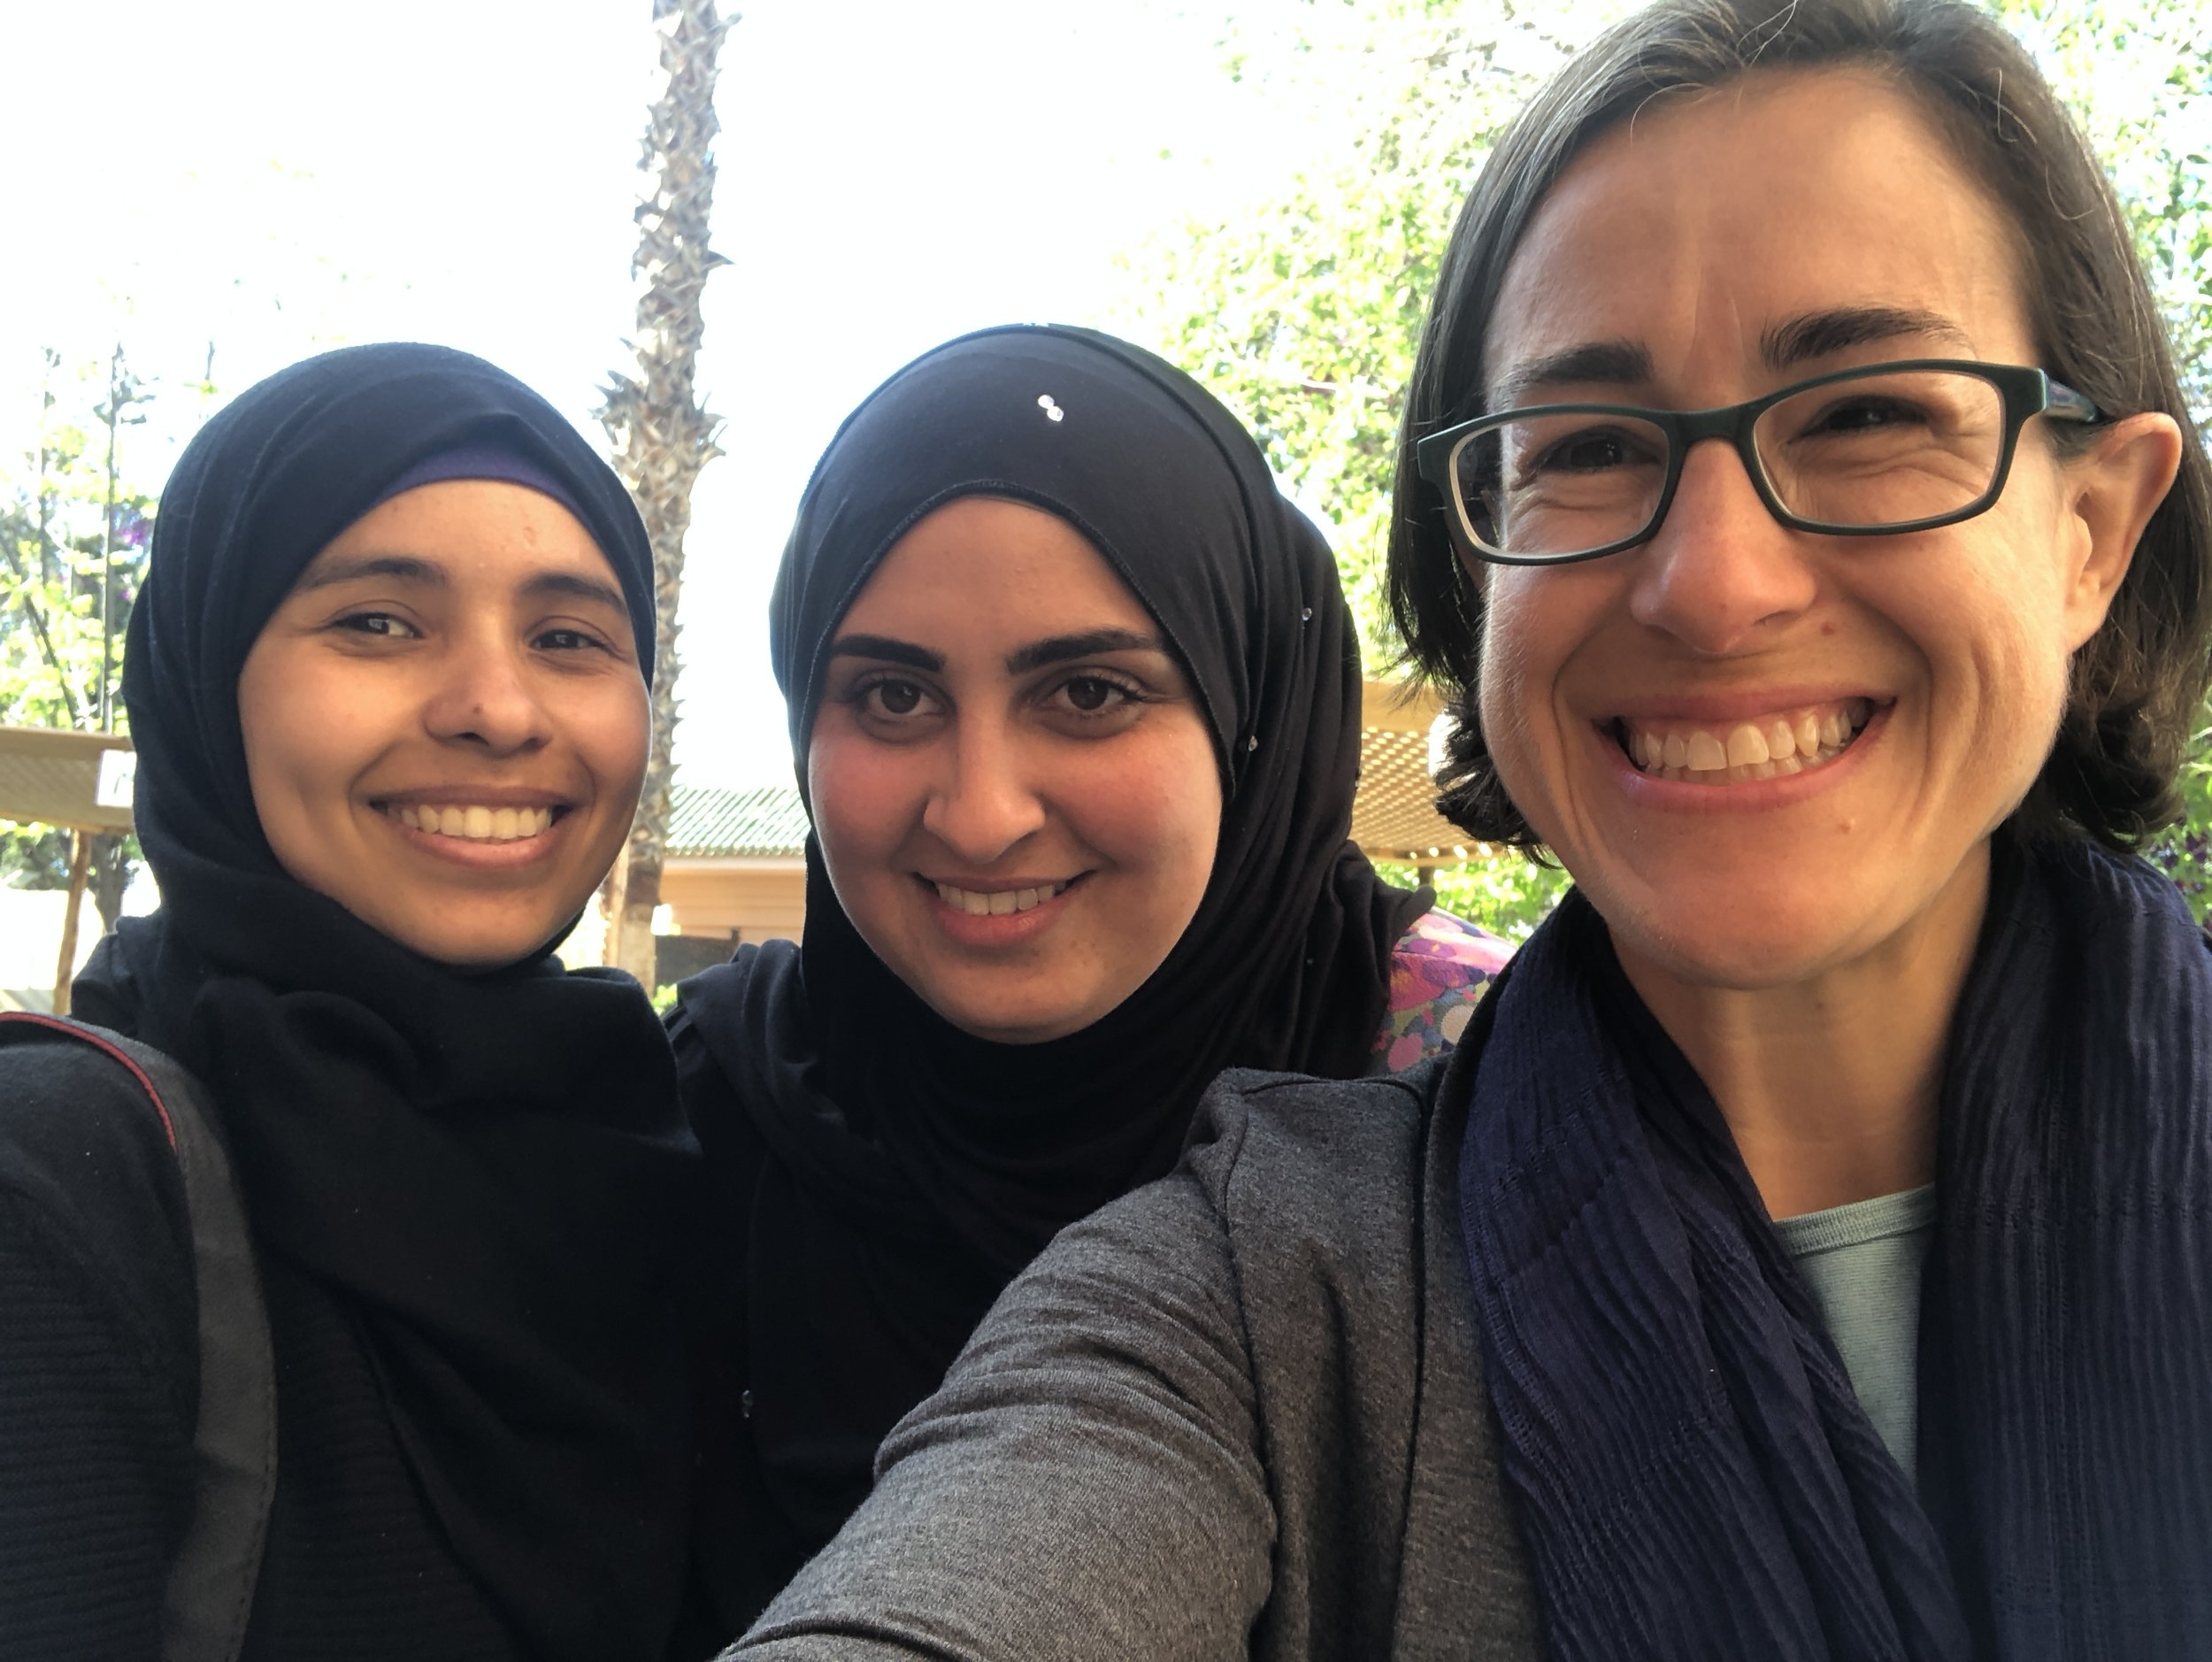 Warda and Oumaima humor me with a selfie.